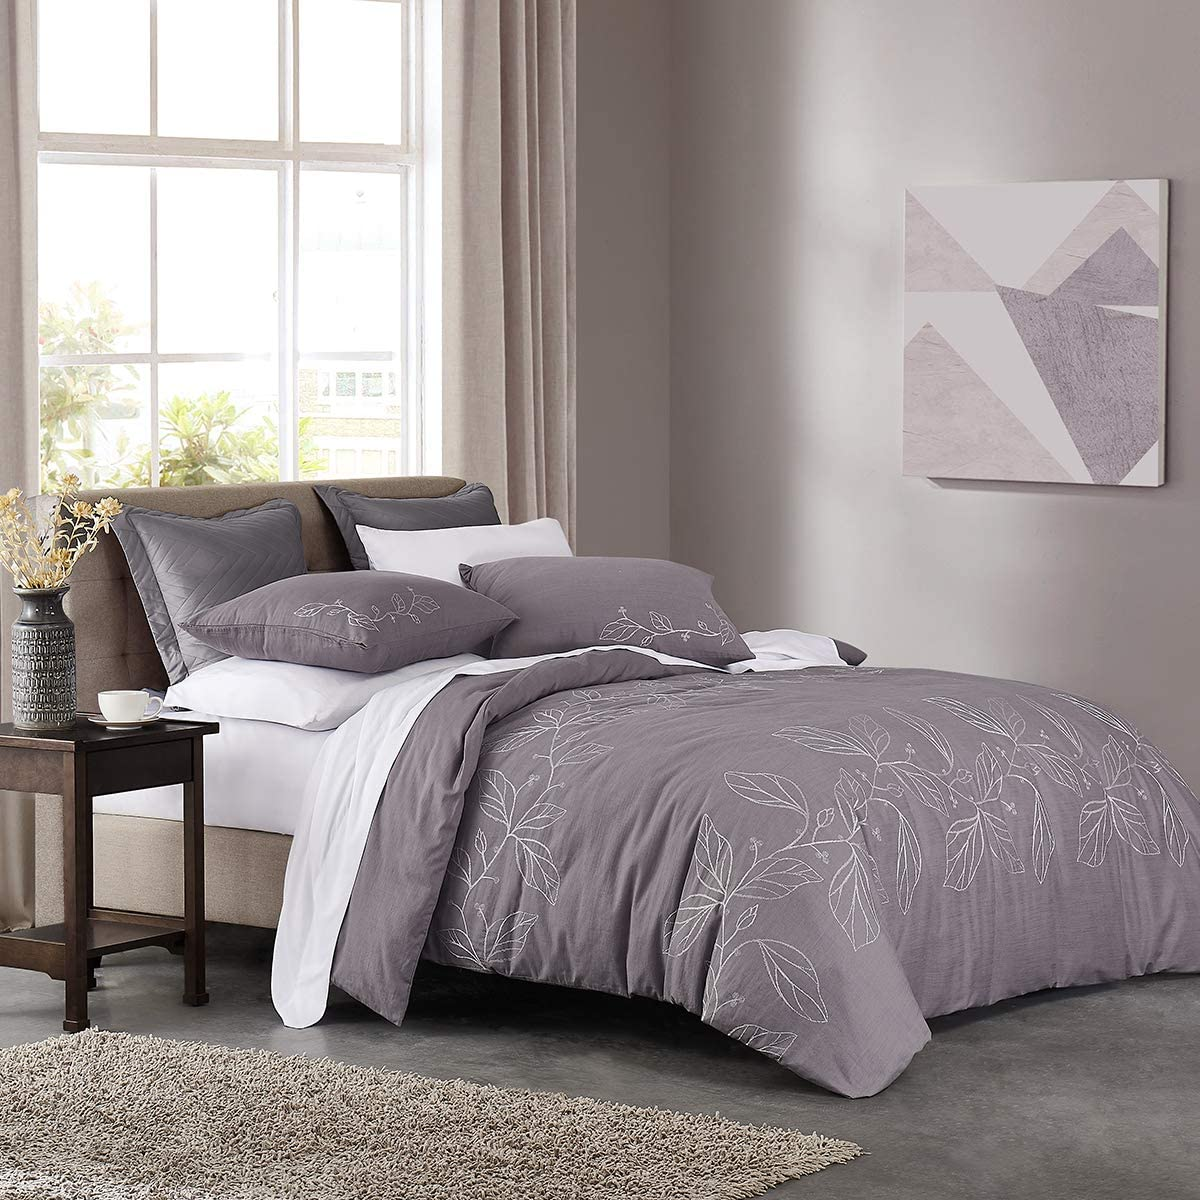 HeyDreamy Embroidery 3 Piece Duvet Cover Ranking TOP17 Soft Cotton Set Ultra S Award